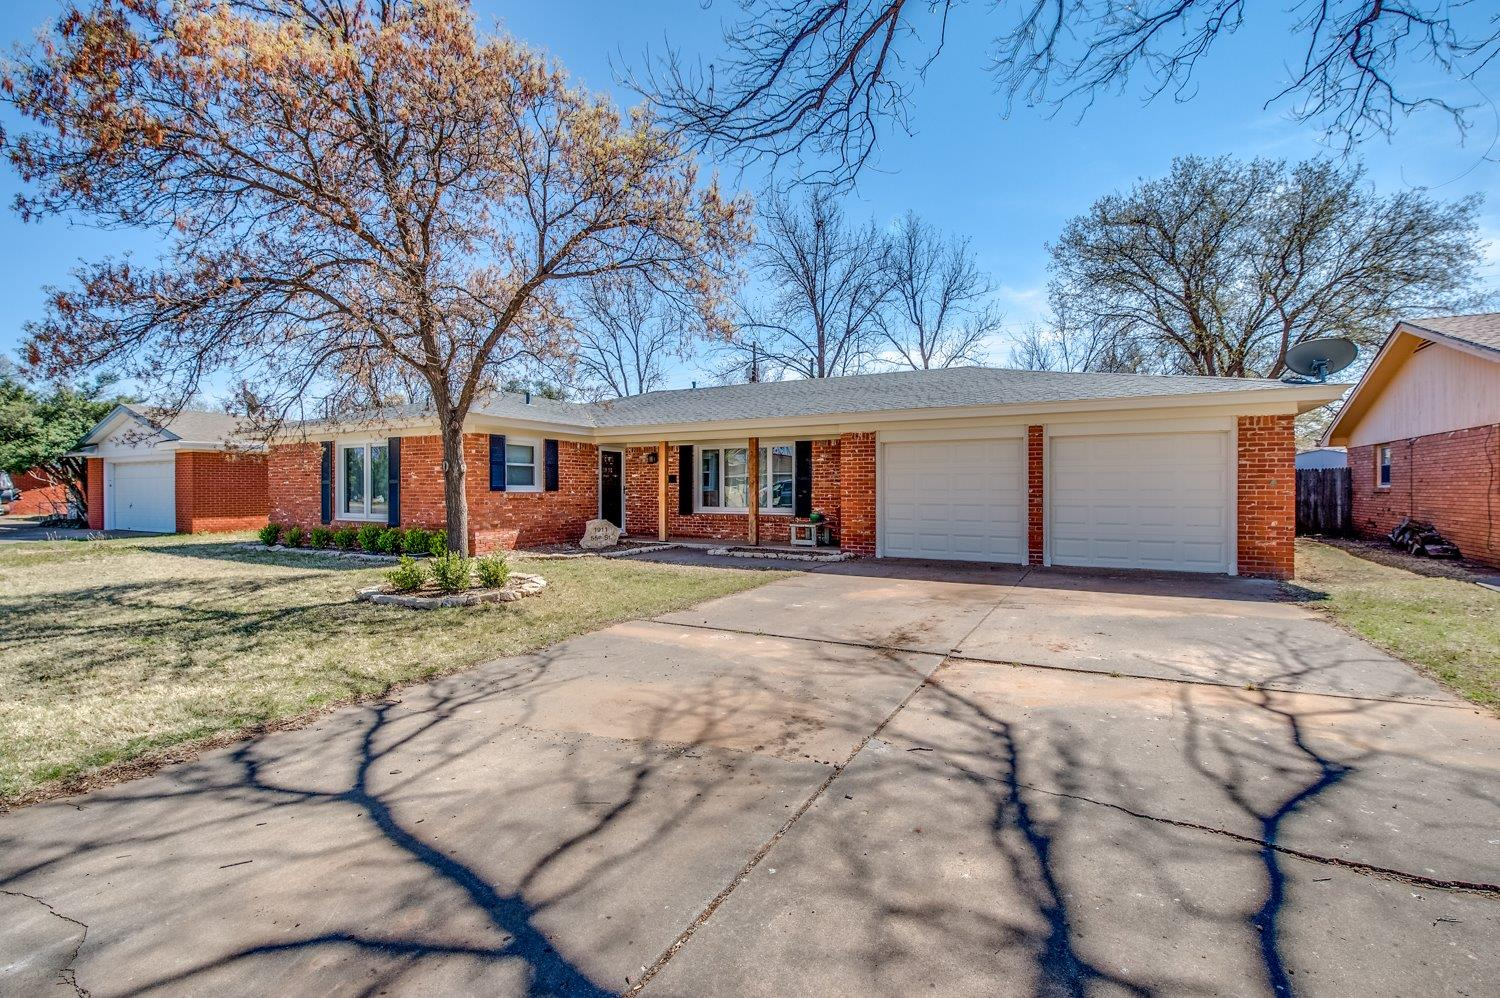 1911 55th Street, Lubbock in Lubbock County, TX 79412 Home for Sale